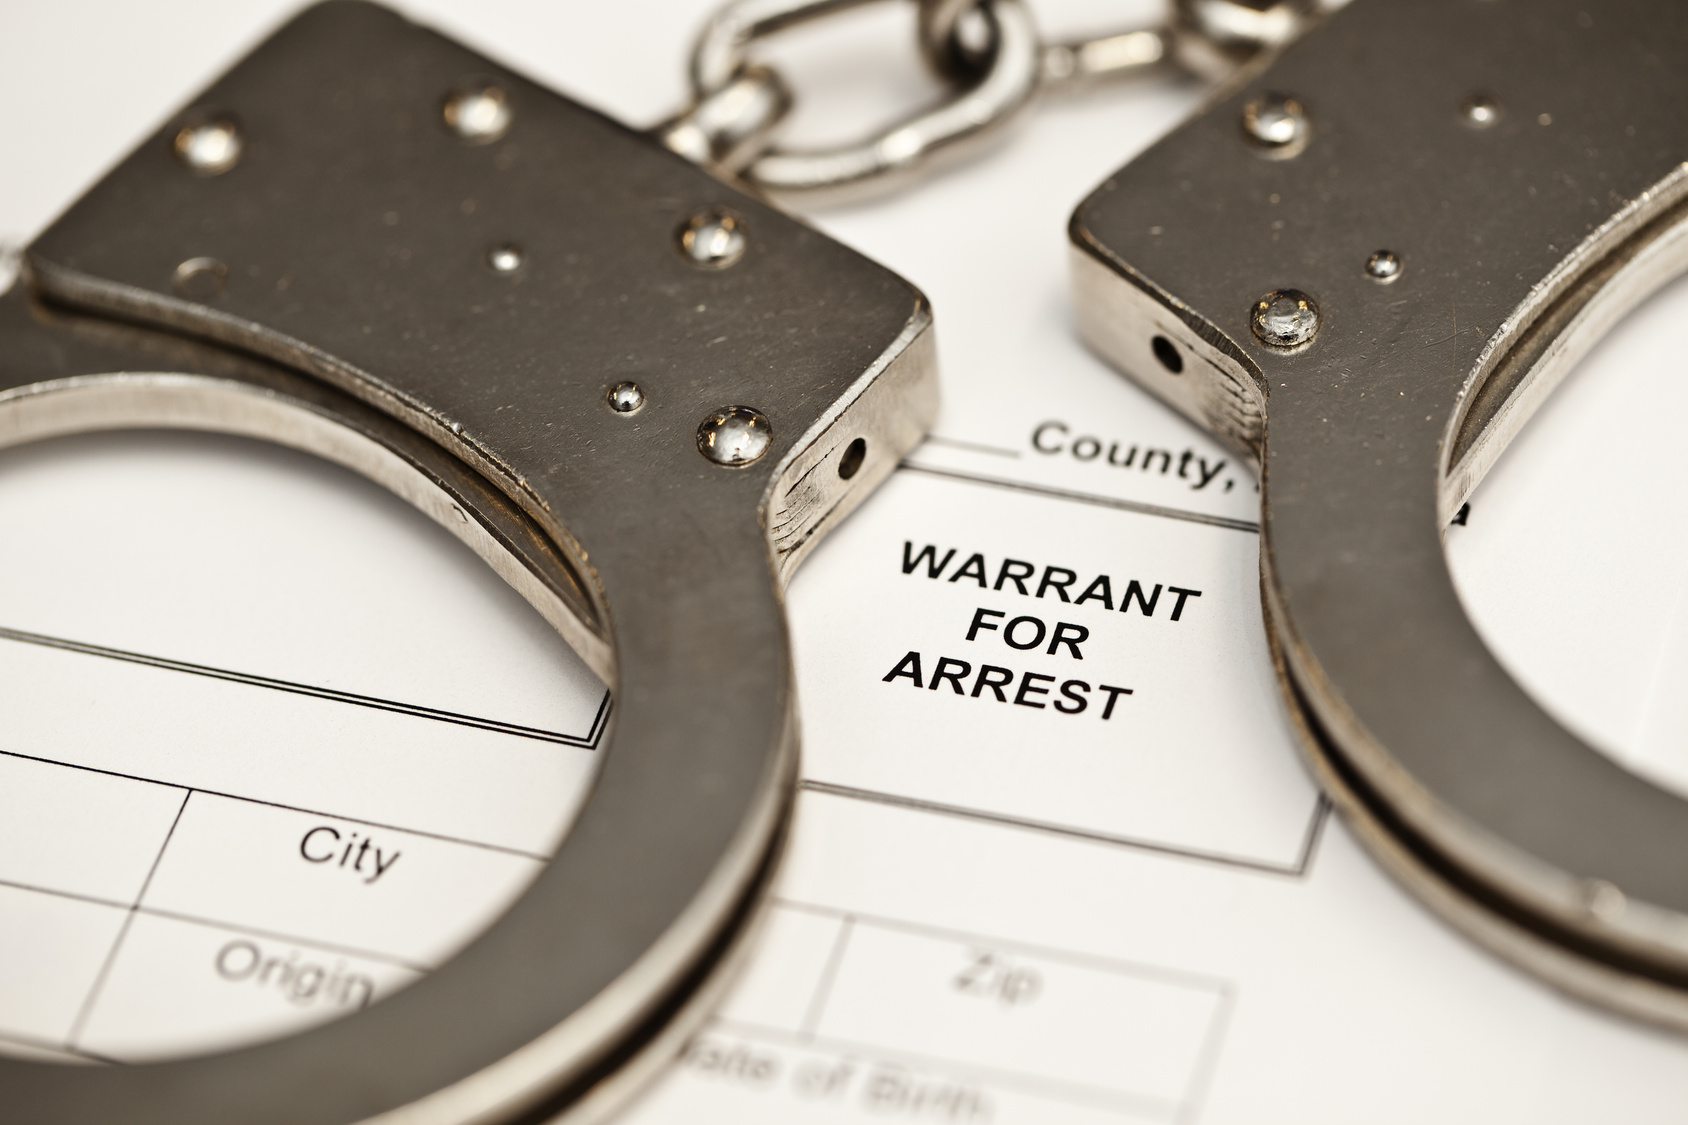 Hughesville resident arrested on outstanding warrant.